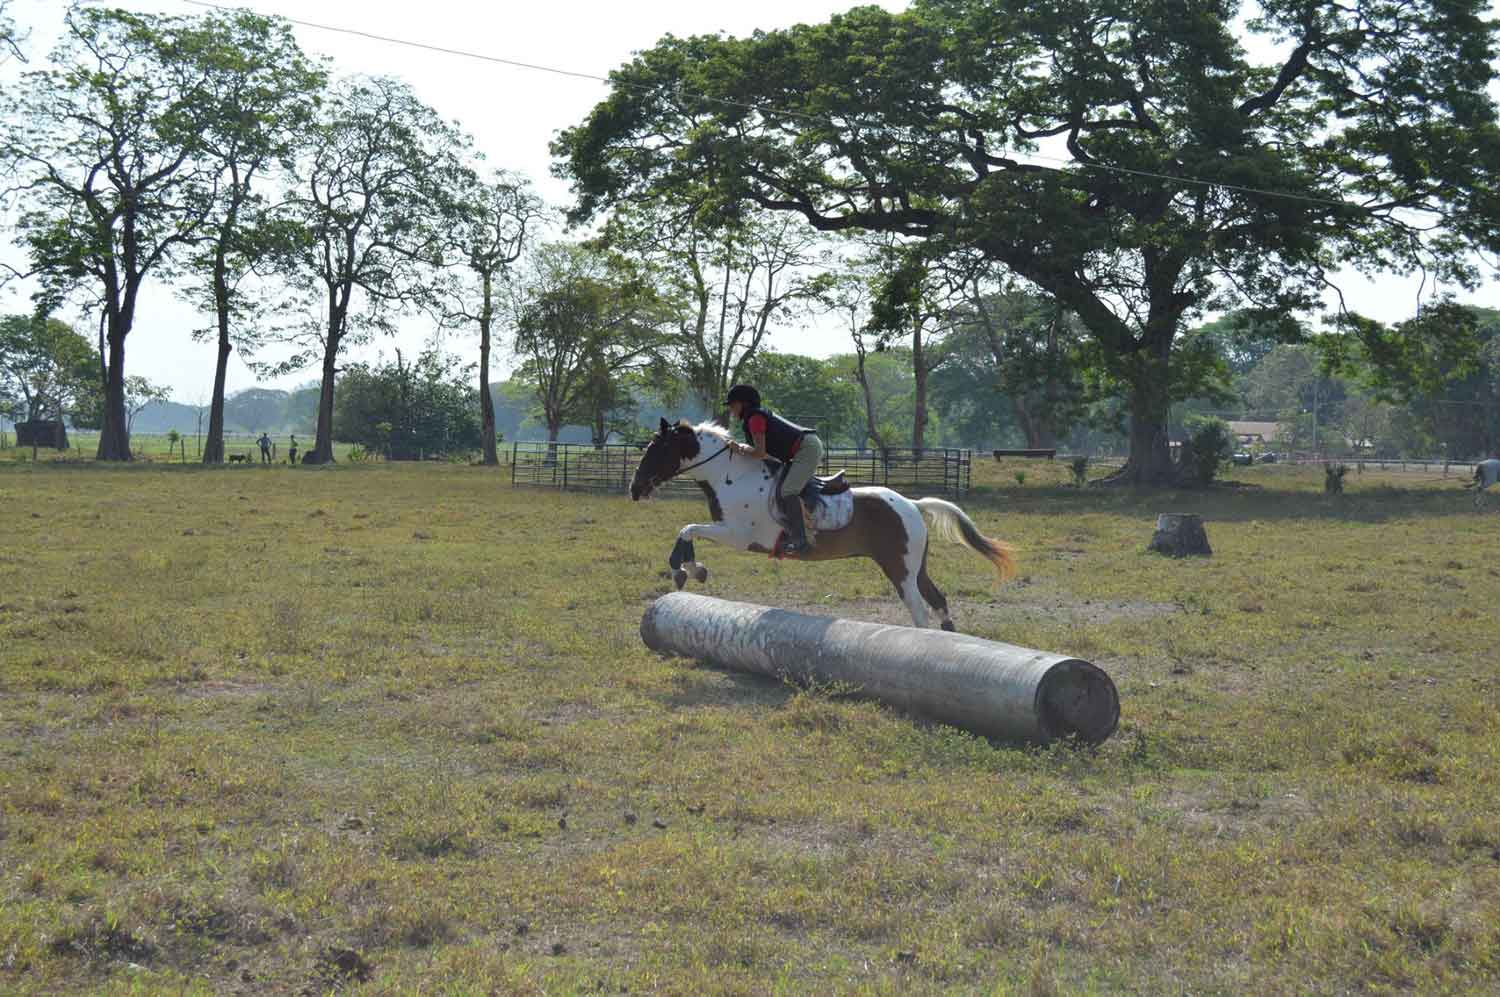 Costa Rica Equestrian Vacations - Horseback Riding